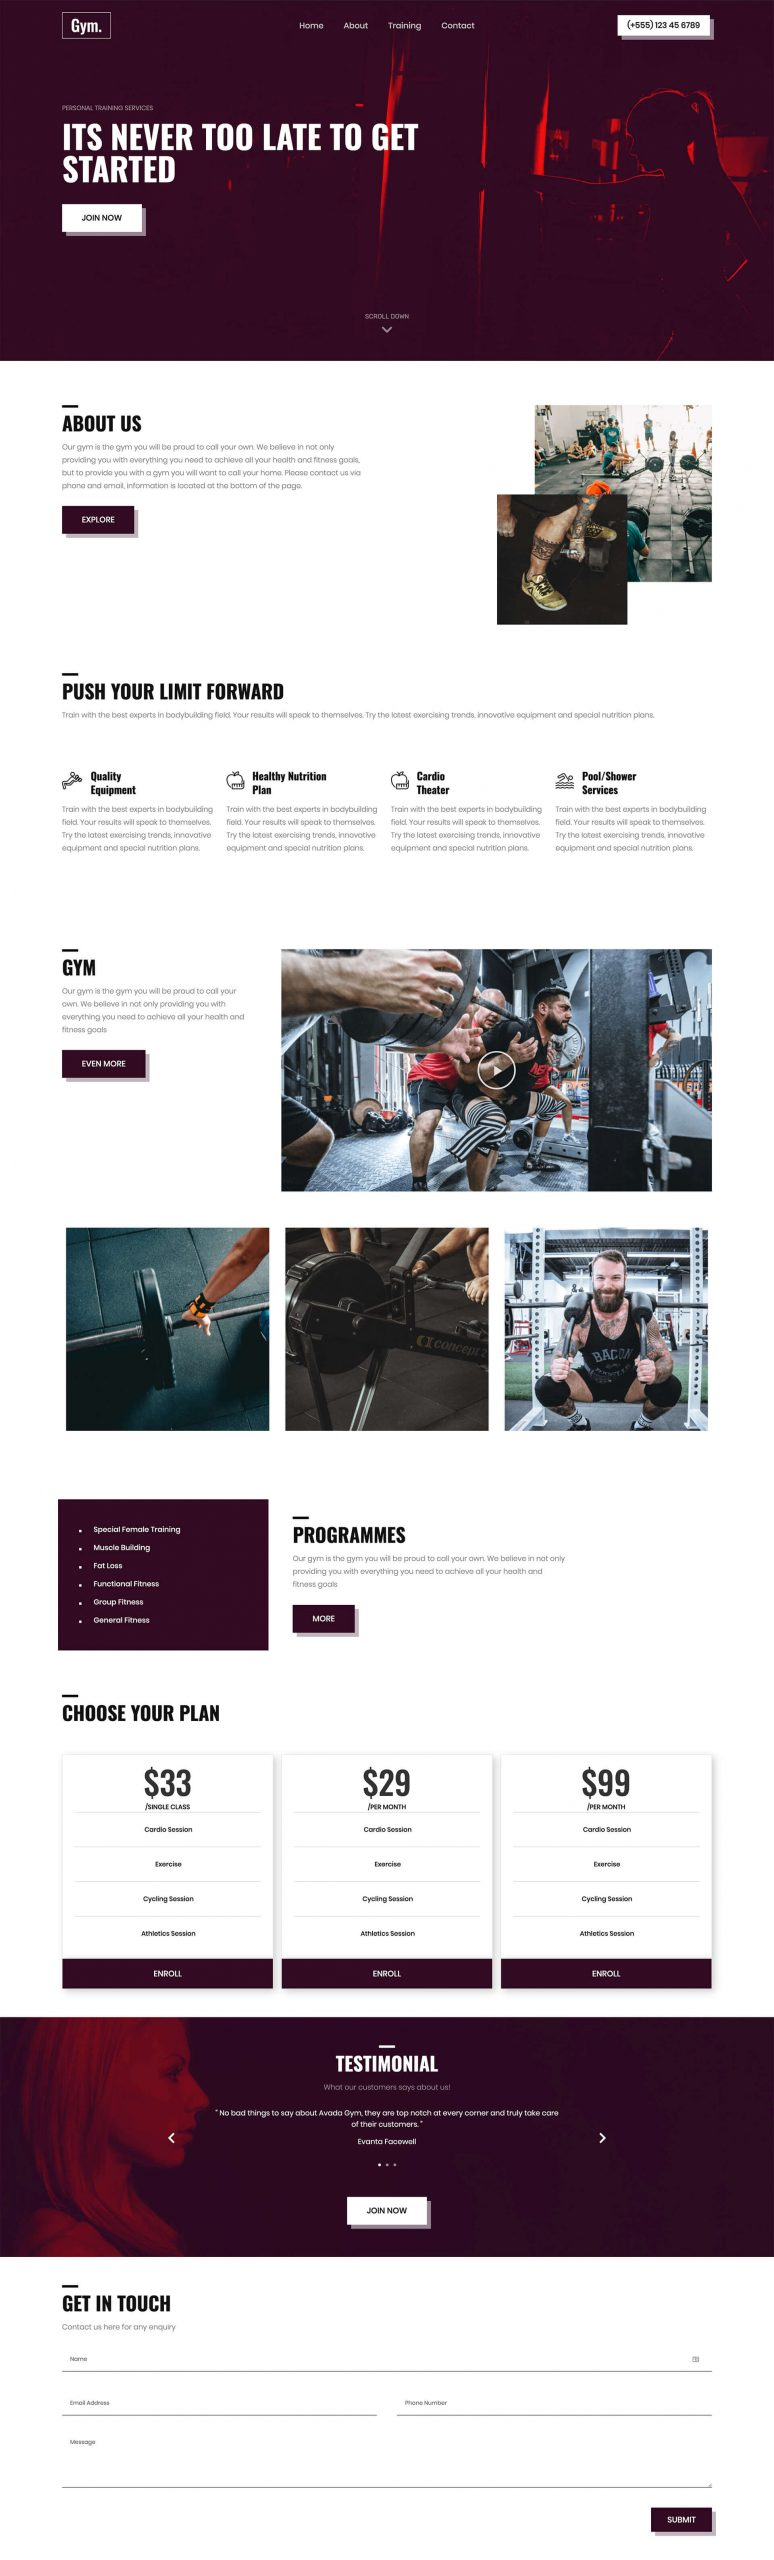 PowerPack Elements Template - Gym